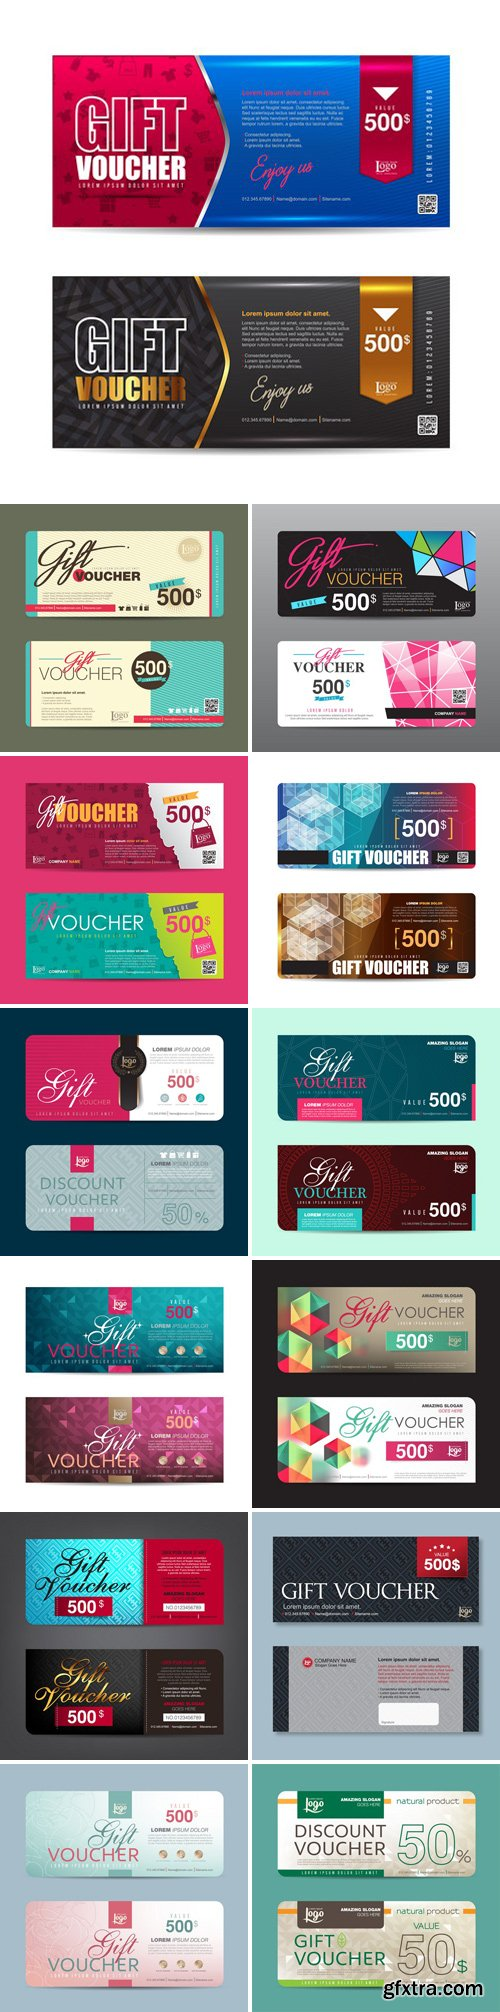 Stock Vectors - Gift Voucher Template, Cute Gift Voucher Certificate Coupon Design Template,Collection Gift Certificate Business Card Banner Calling Card Poster